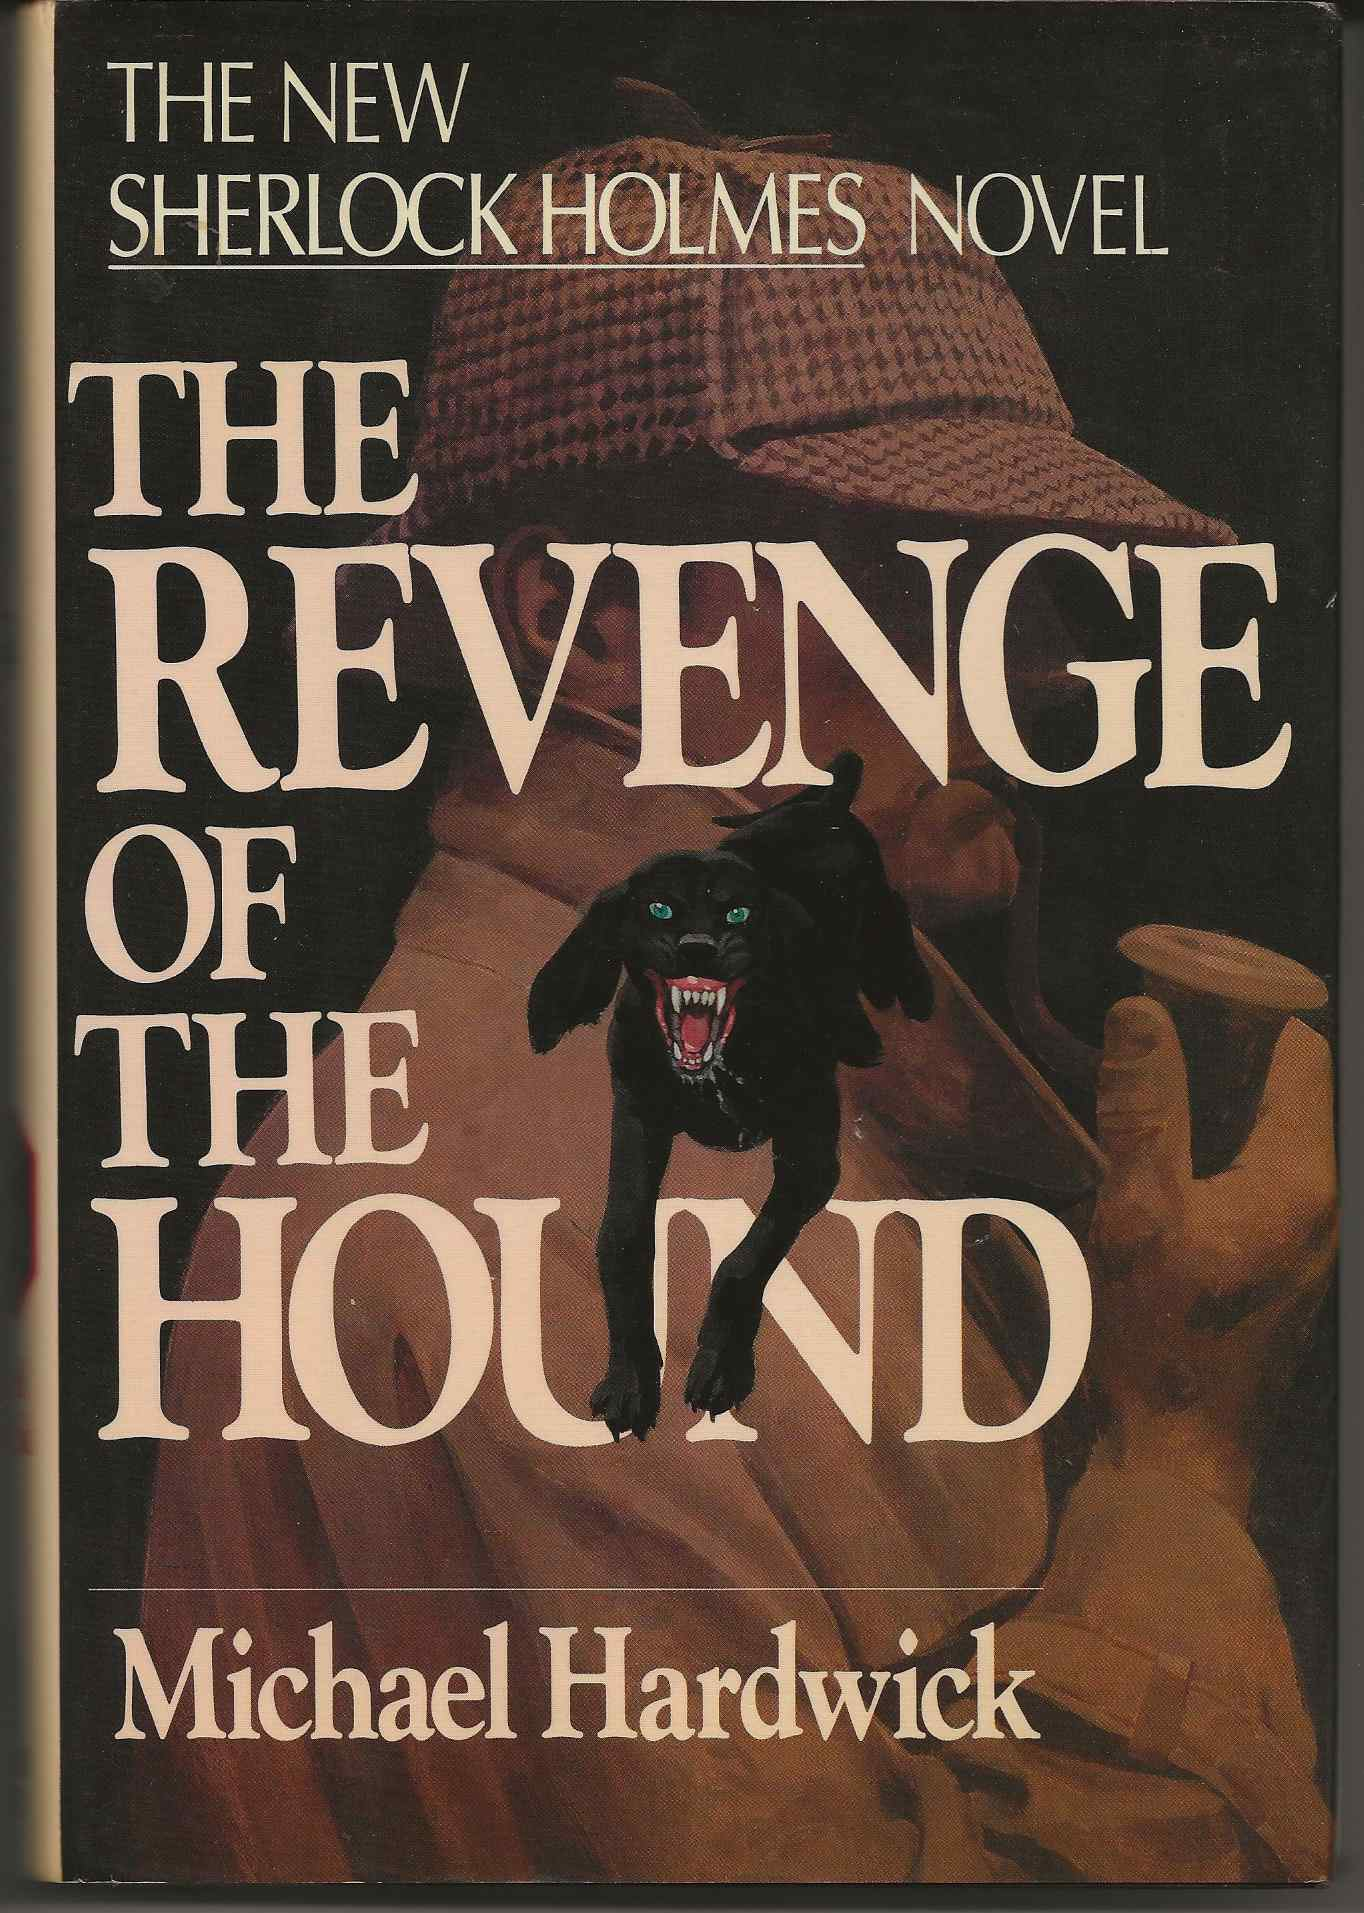 Image for THE REVENGE OF THE HOUND